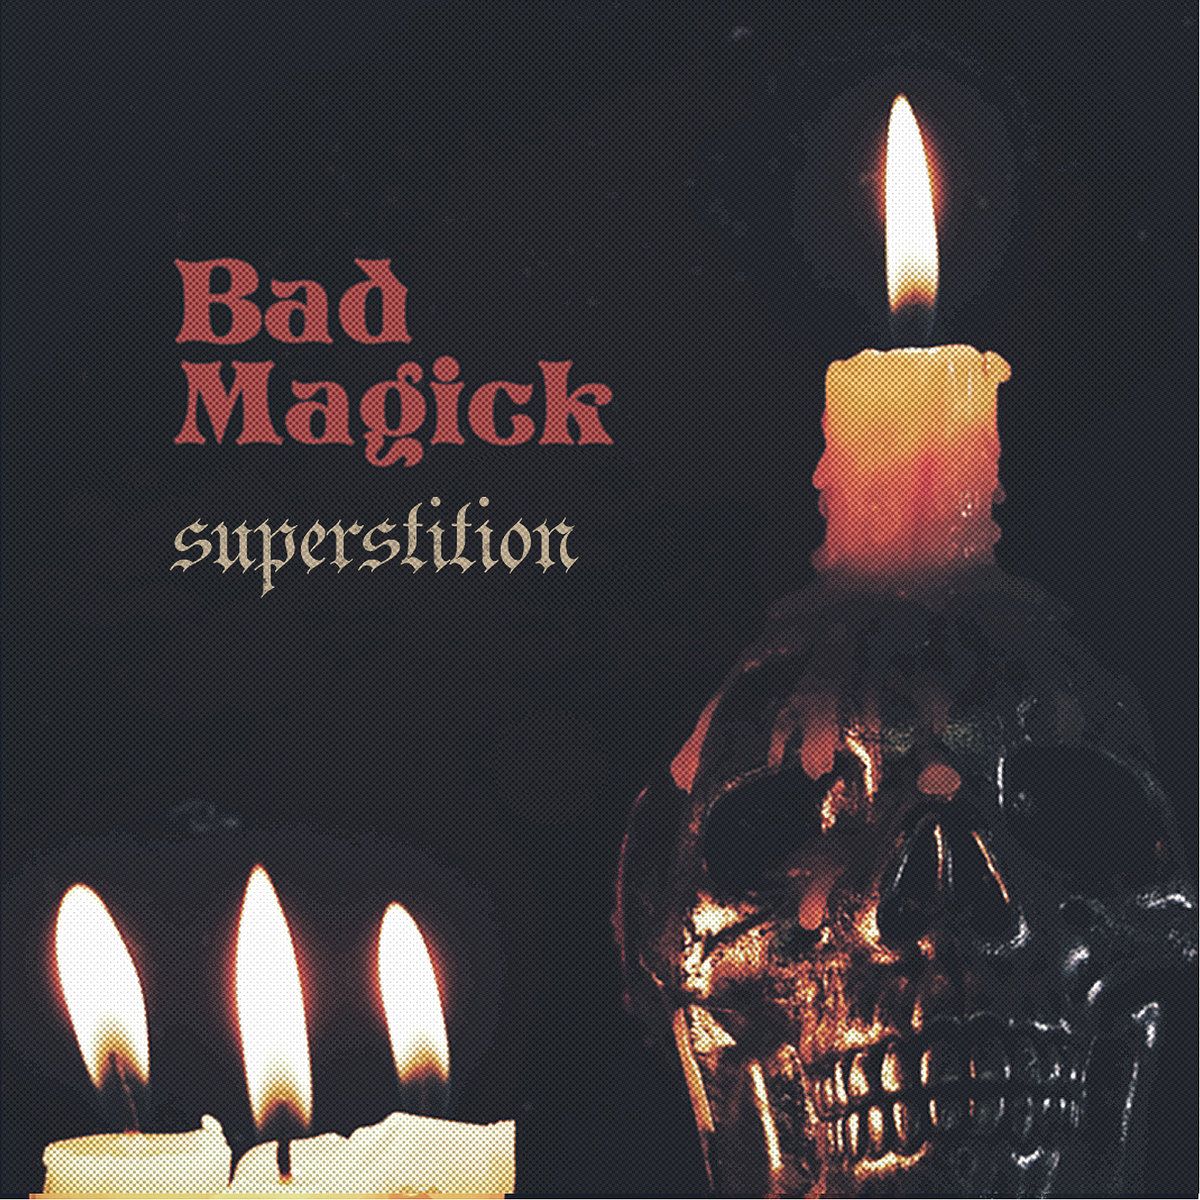 bad magick superstition